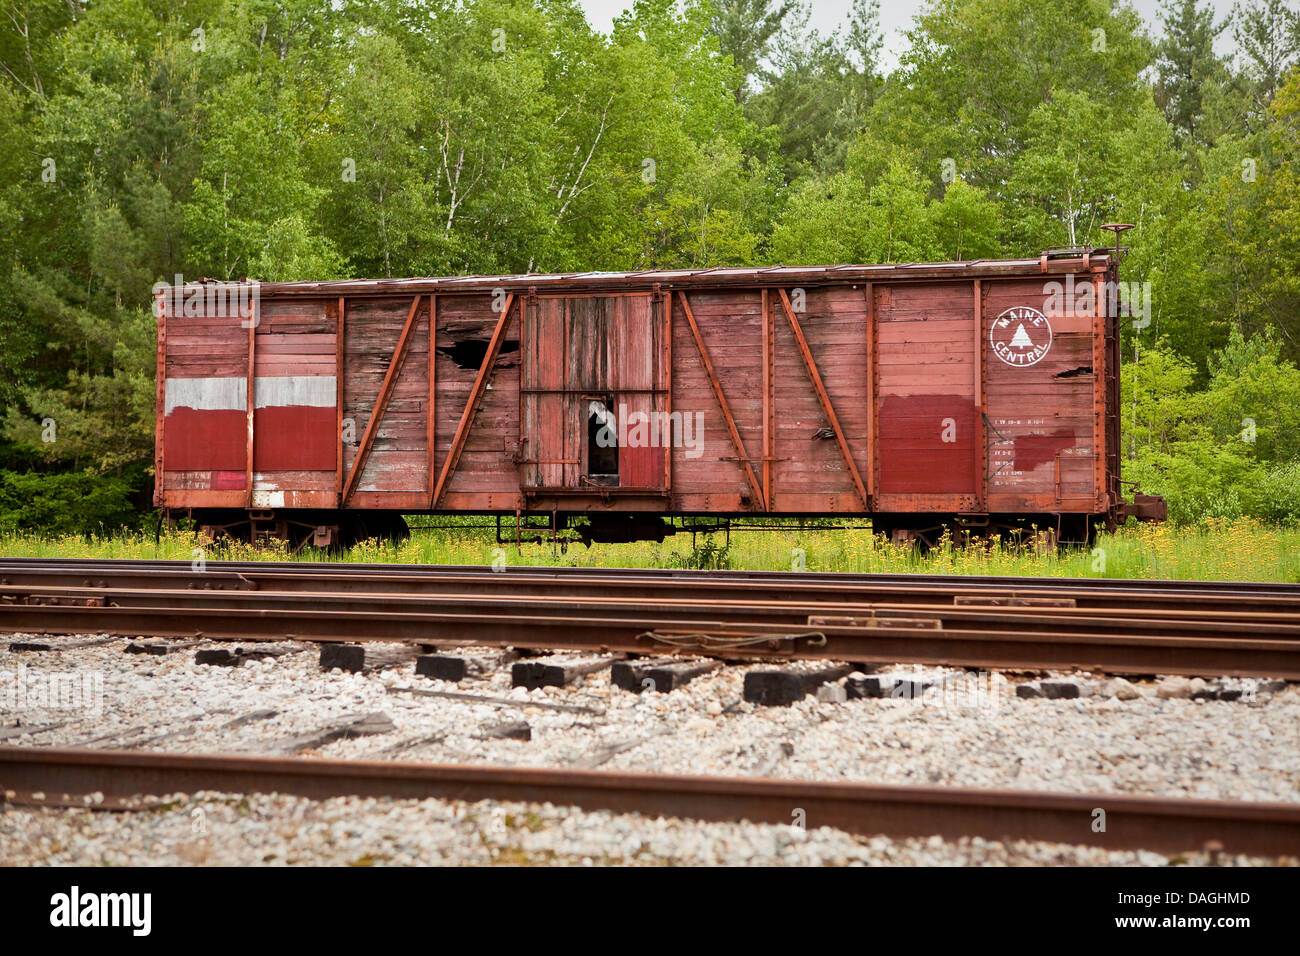 Railroad Company Stock Photos & Railroad Company Stock